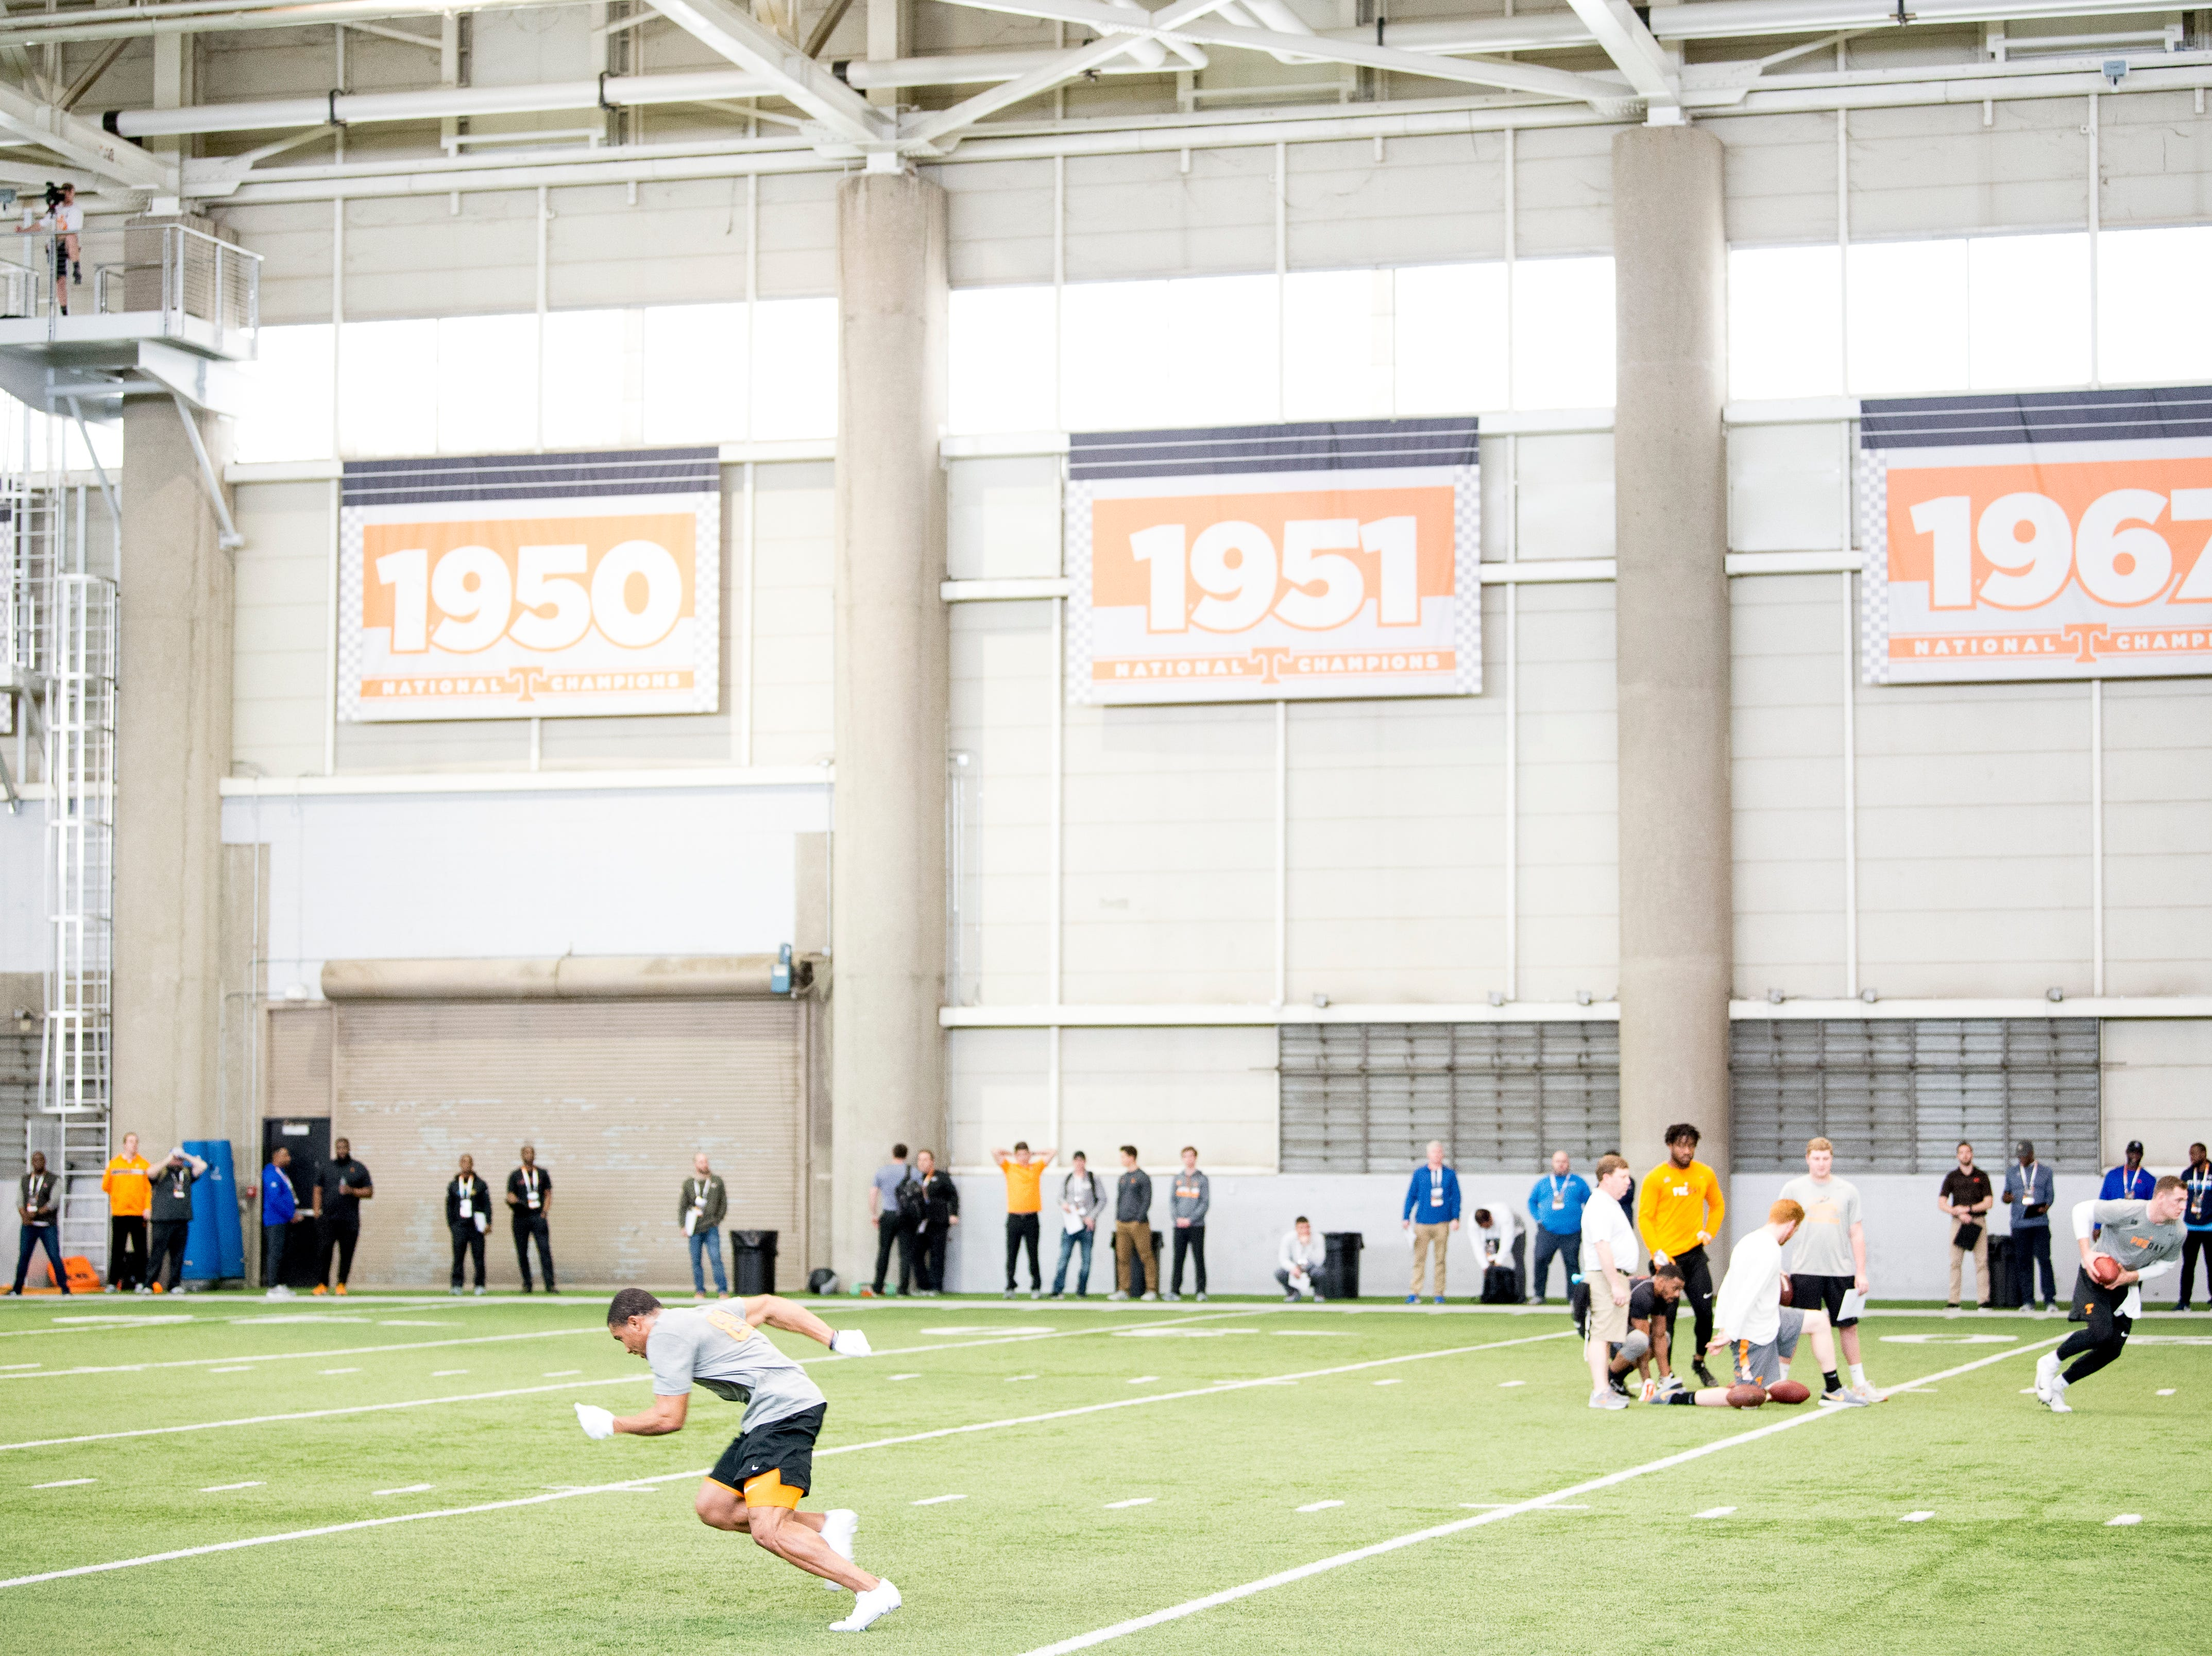 A view of Tennessee Pro Day at Anderson Training Facility in Knoxville, Tennessee on Thursday, March 14, 2019. Draft prospects from Tennessee and other schools worked out before NFL scouts.